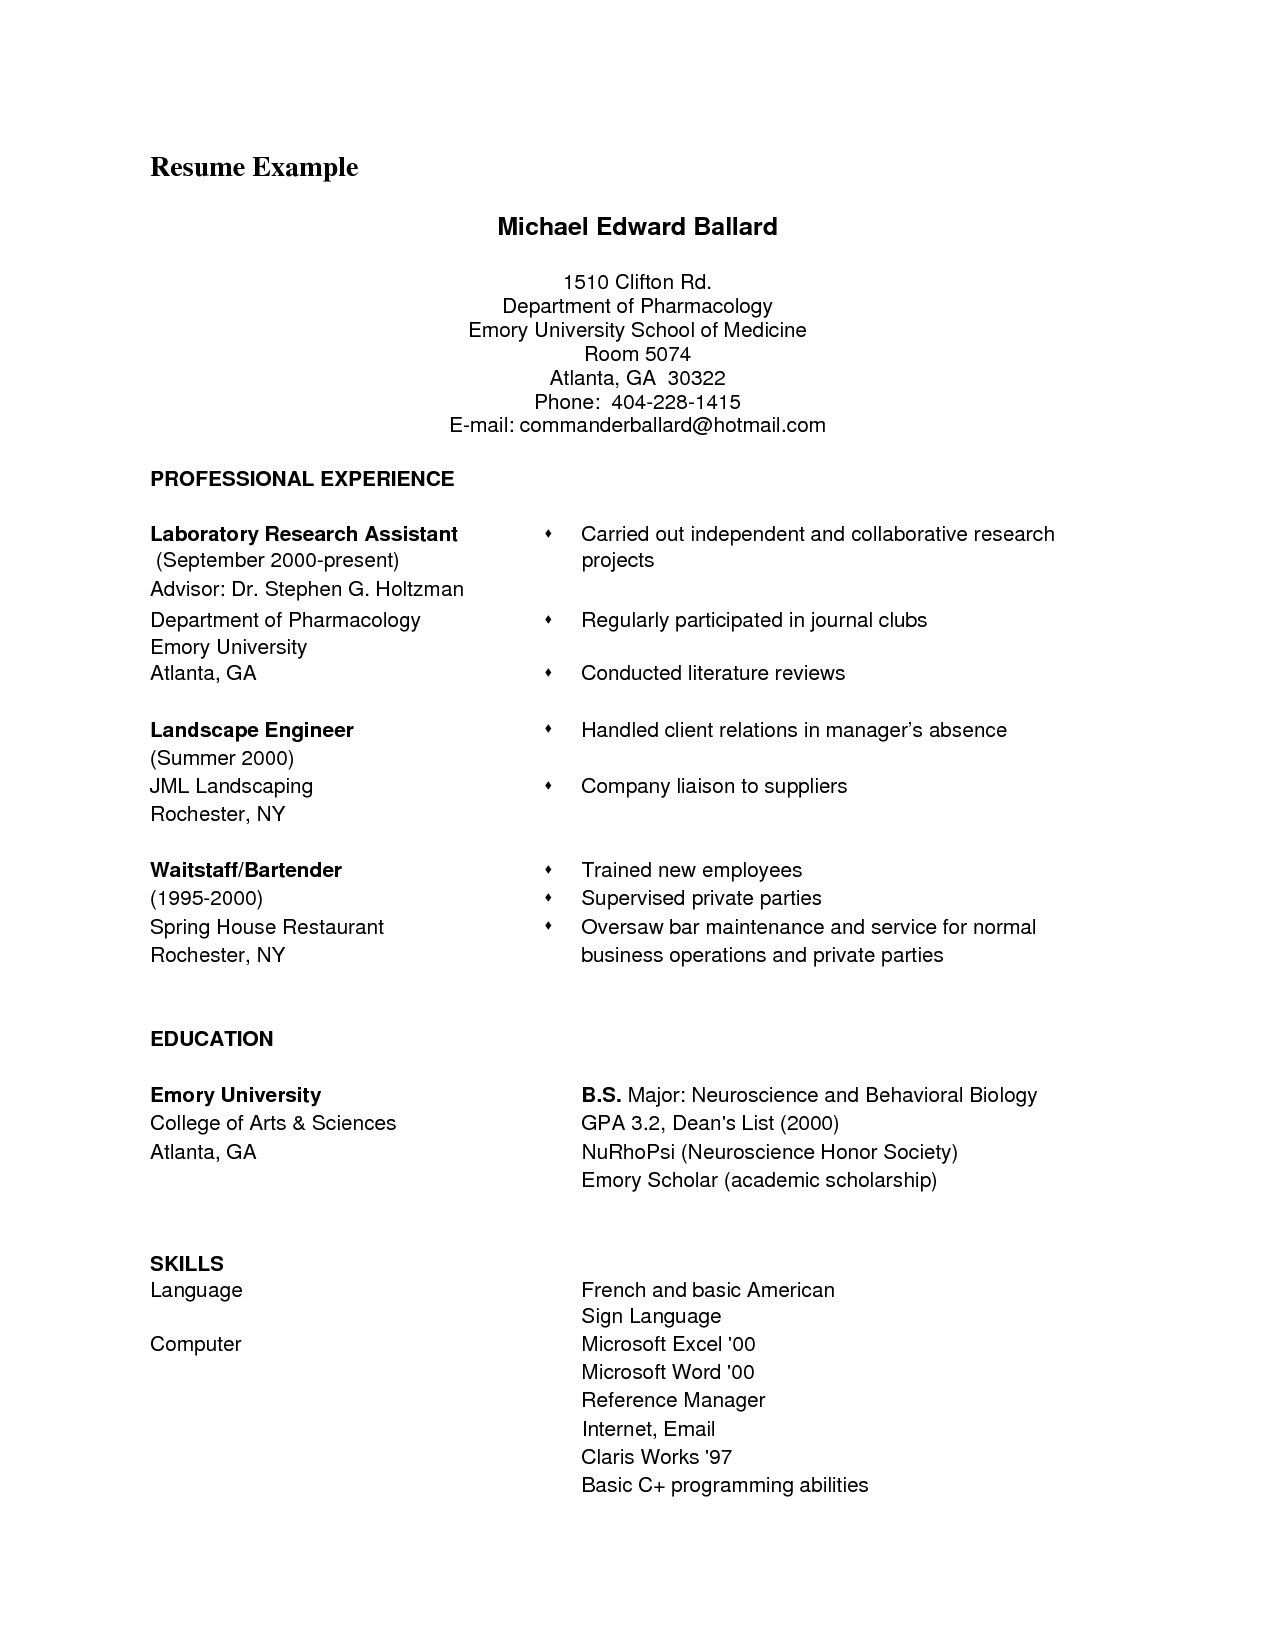 Free Microsoft Resume Templates - √ Free Microsoft Powerpoint Templates astonishing Pharmacology